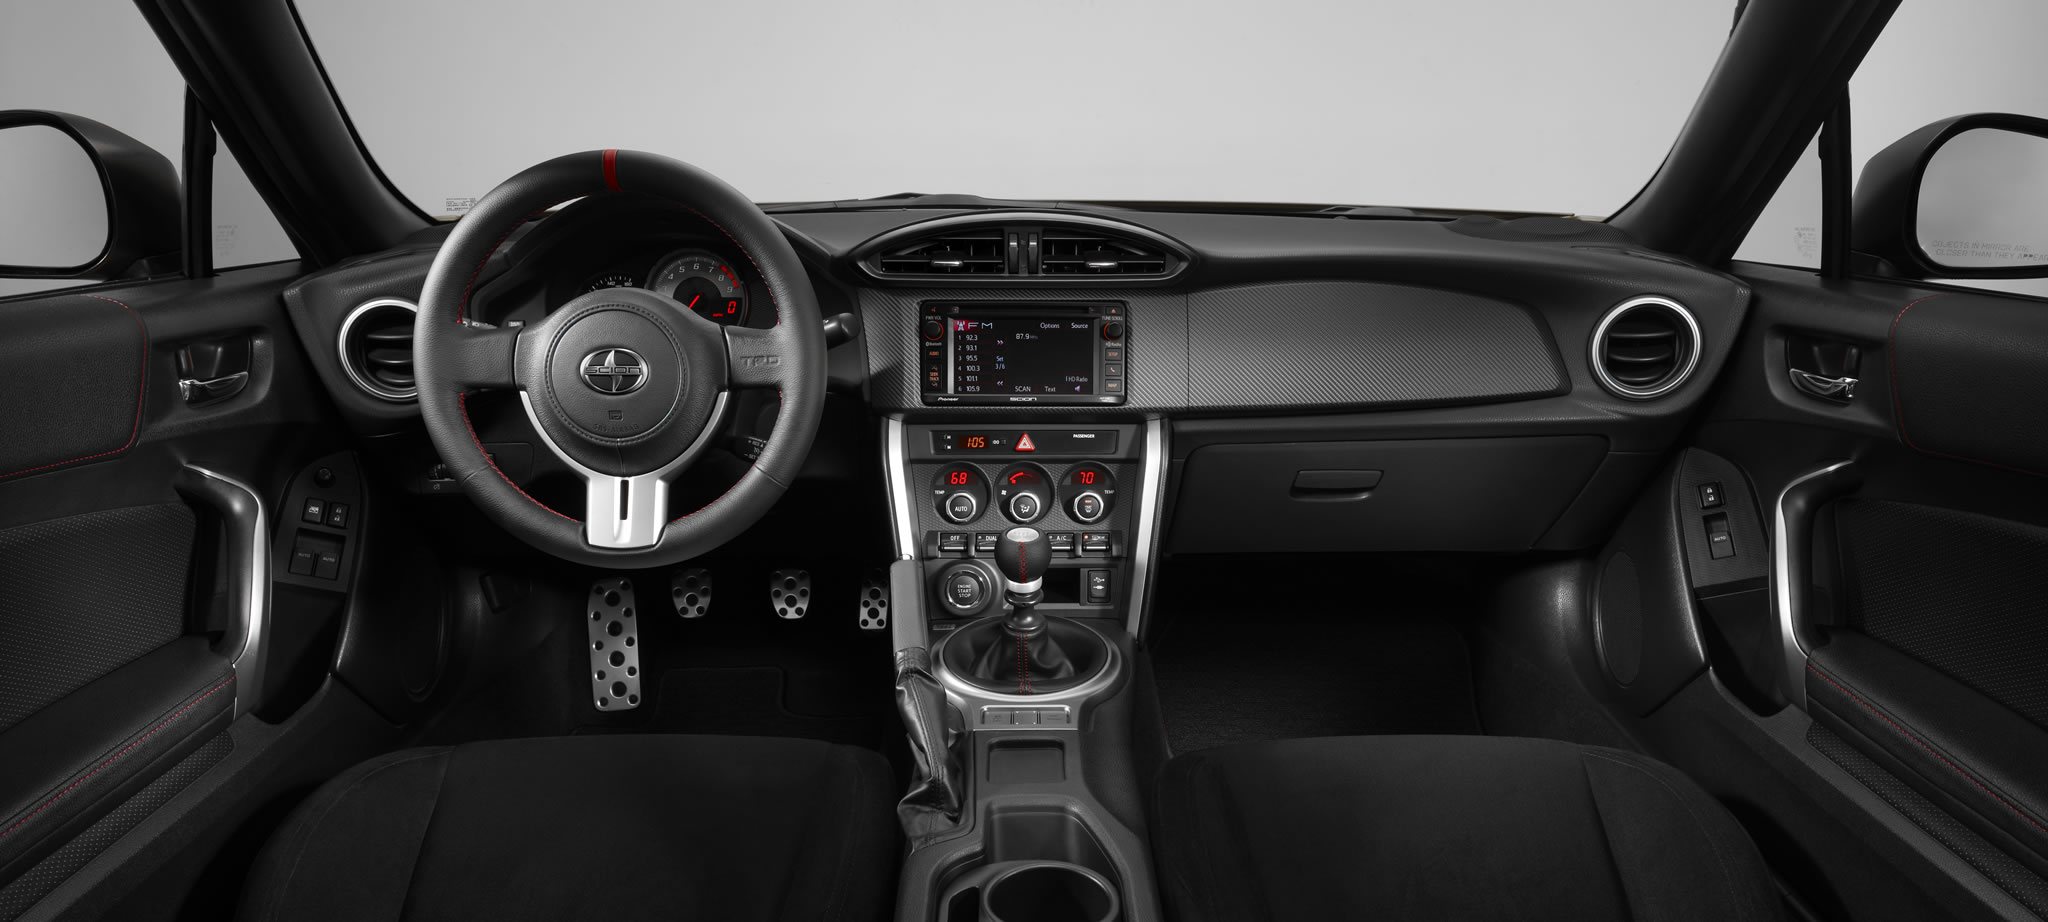 Car Steerying Wallpaper 2015 Scion Fr S Release Series 1 0 Interior Photo Size